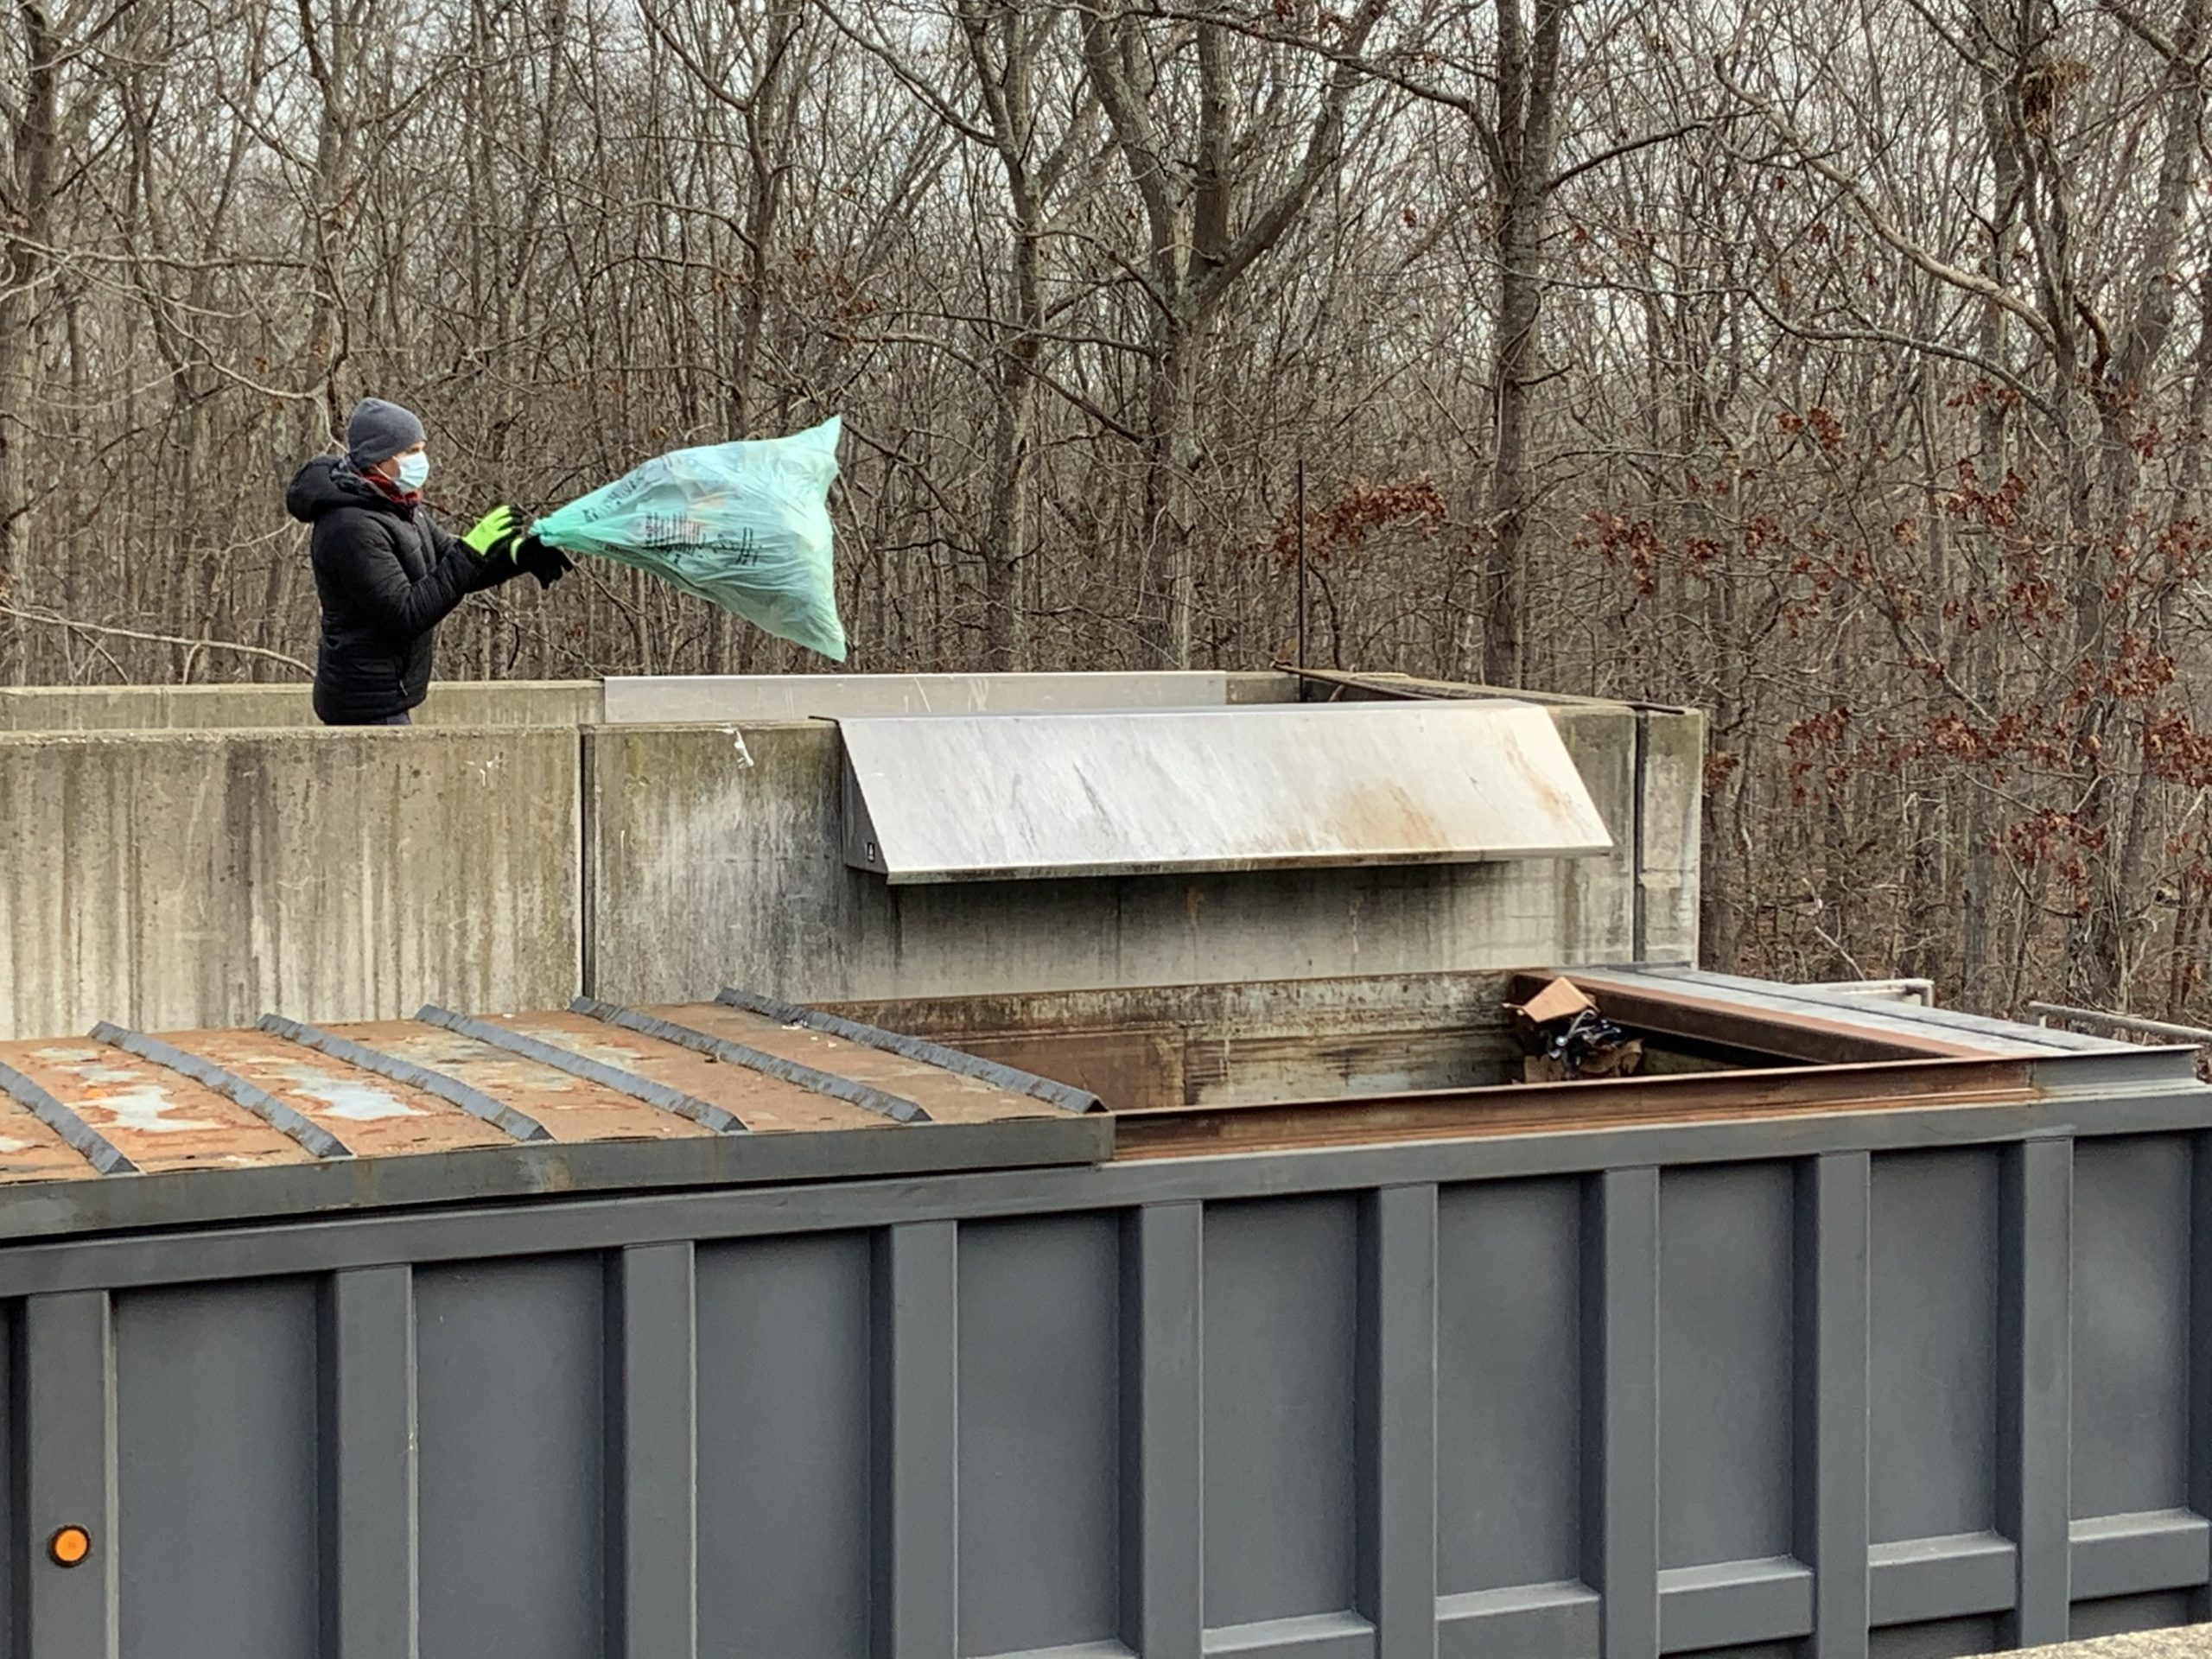 A self-hauler tosses a green bag full of nonrecyclable garbage at the Sag Harbor transfer station. STEPHEN J. KOTZ